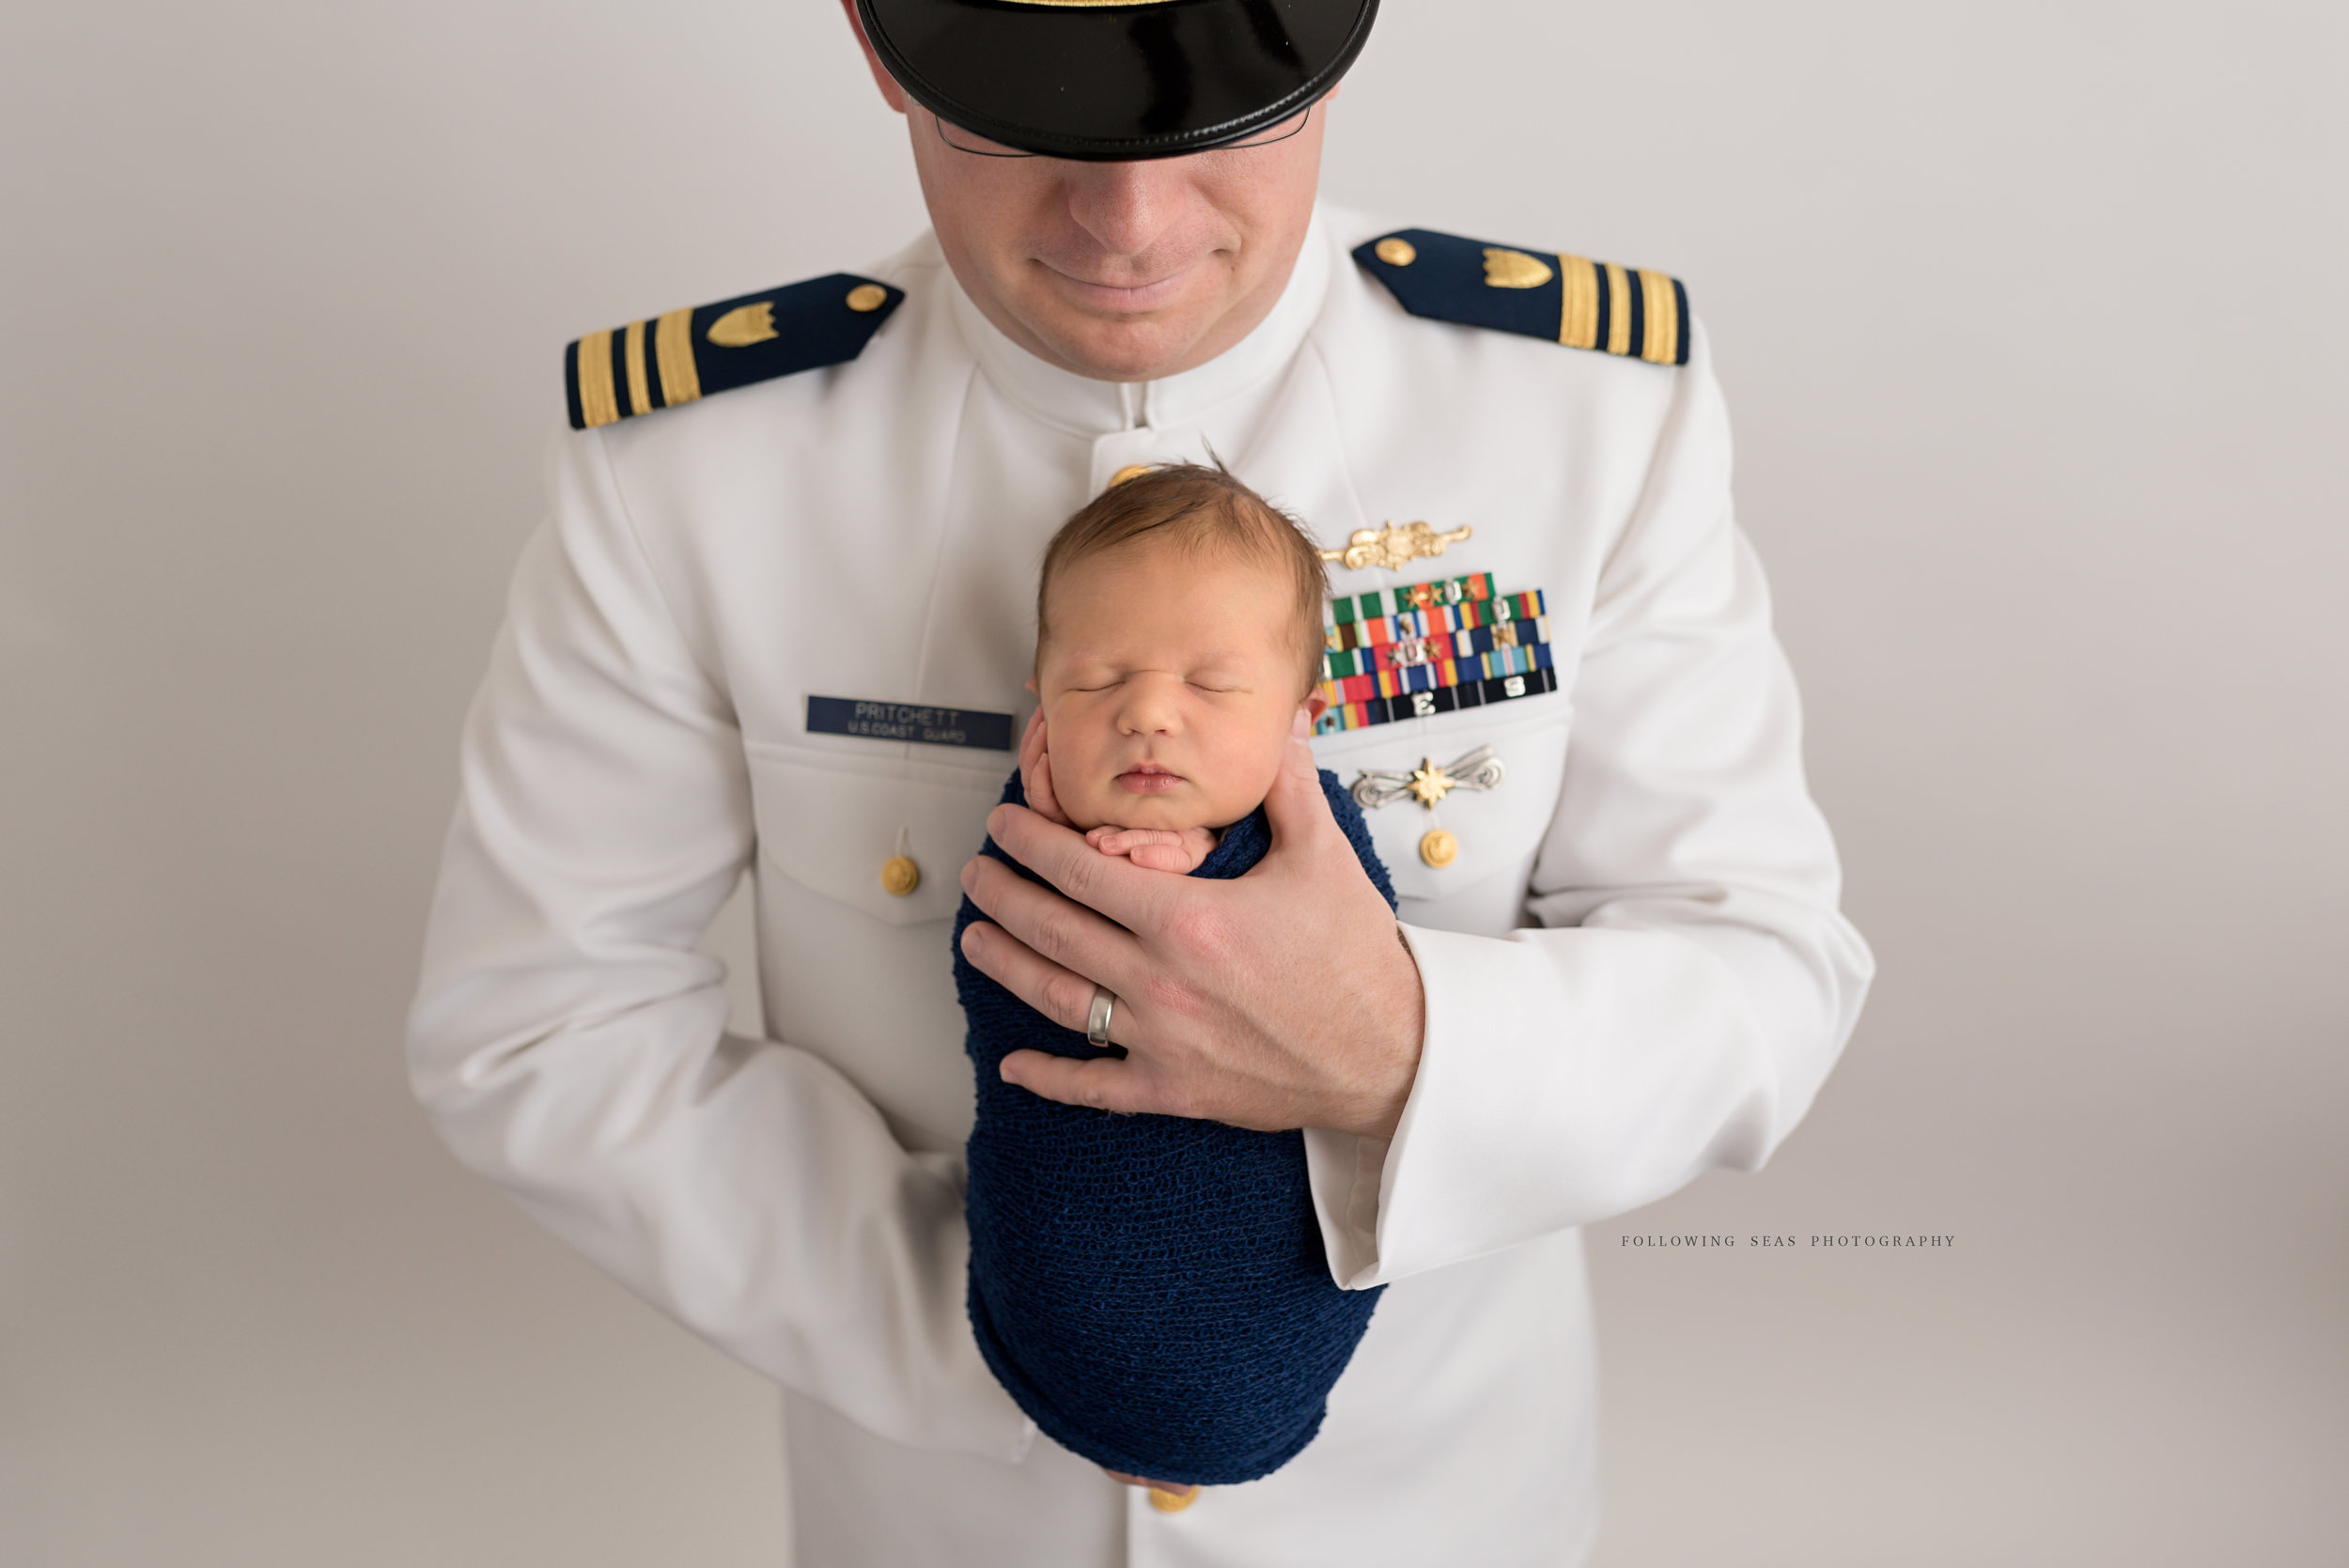 Charleston-Newborn-Photographer-Following-Seas-Photography-FSP_9443.jpg